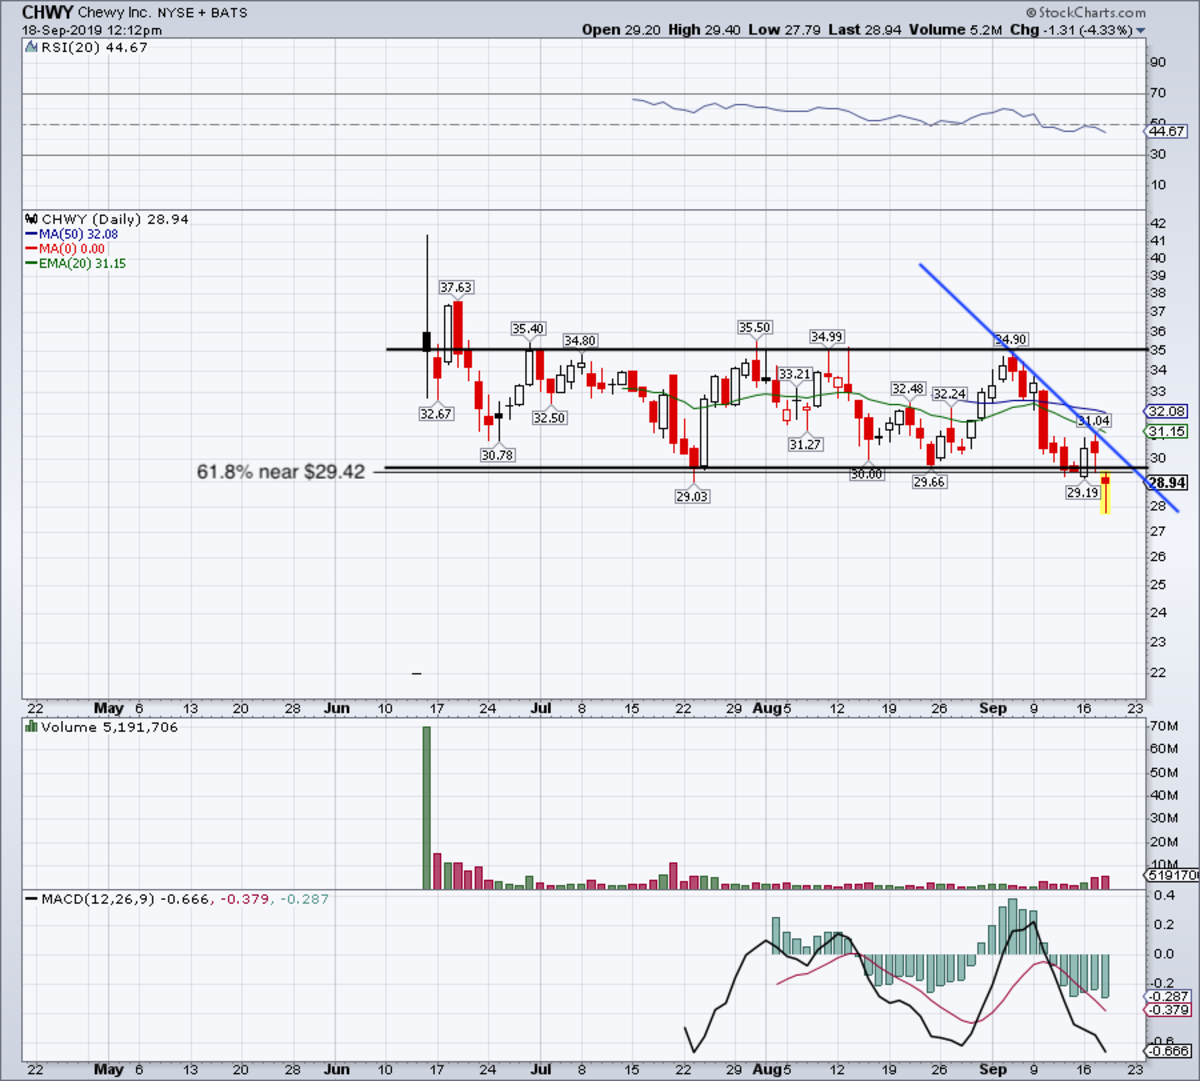 Daily chart of Chewy stock.